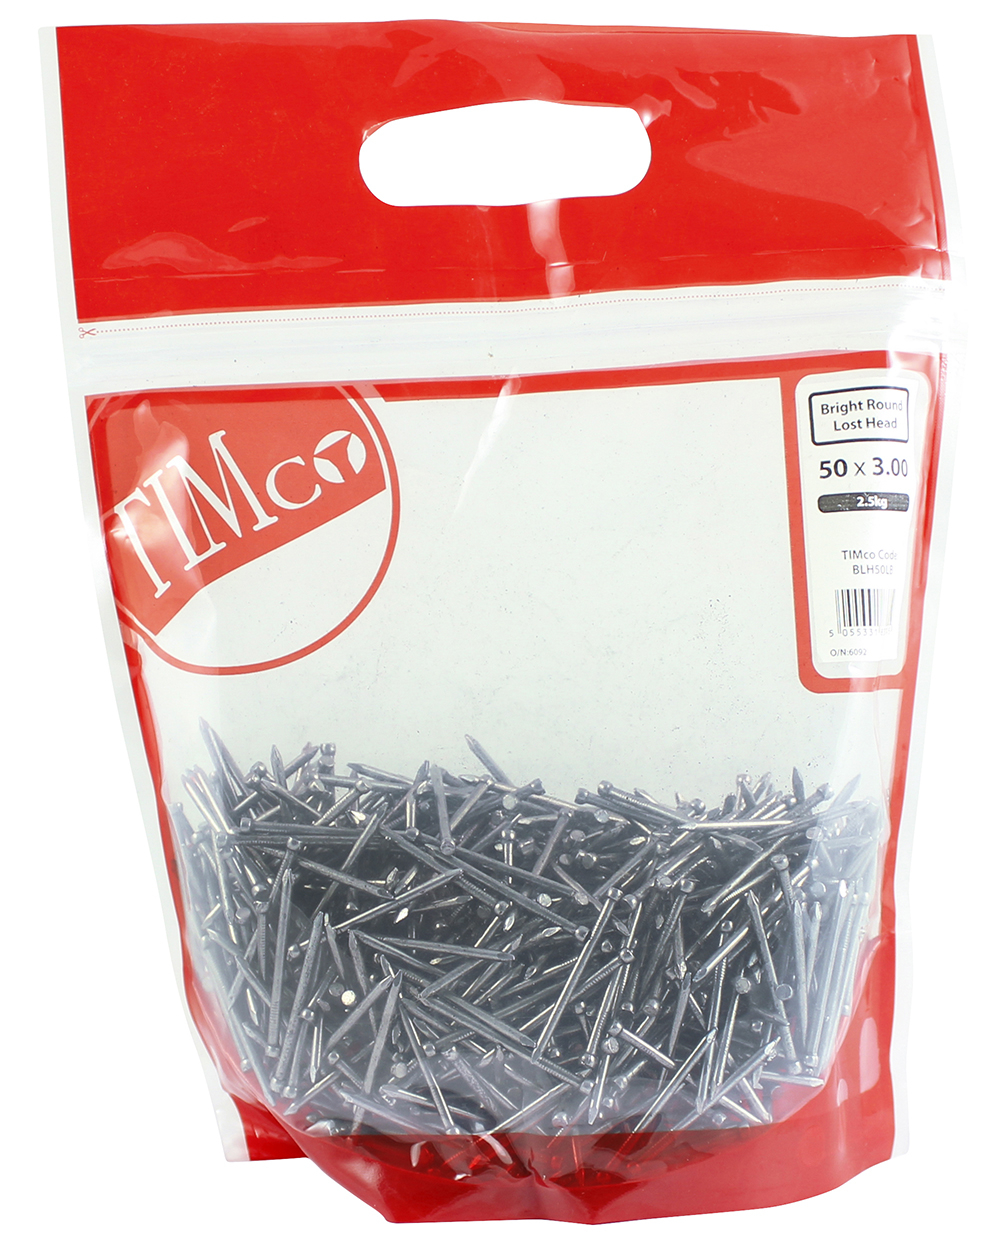 TIMco 50 x 3.00 Round Lost Head Nail - Bright 2.5 kg Bag